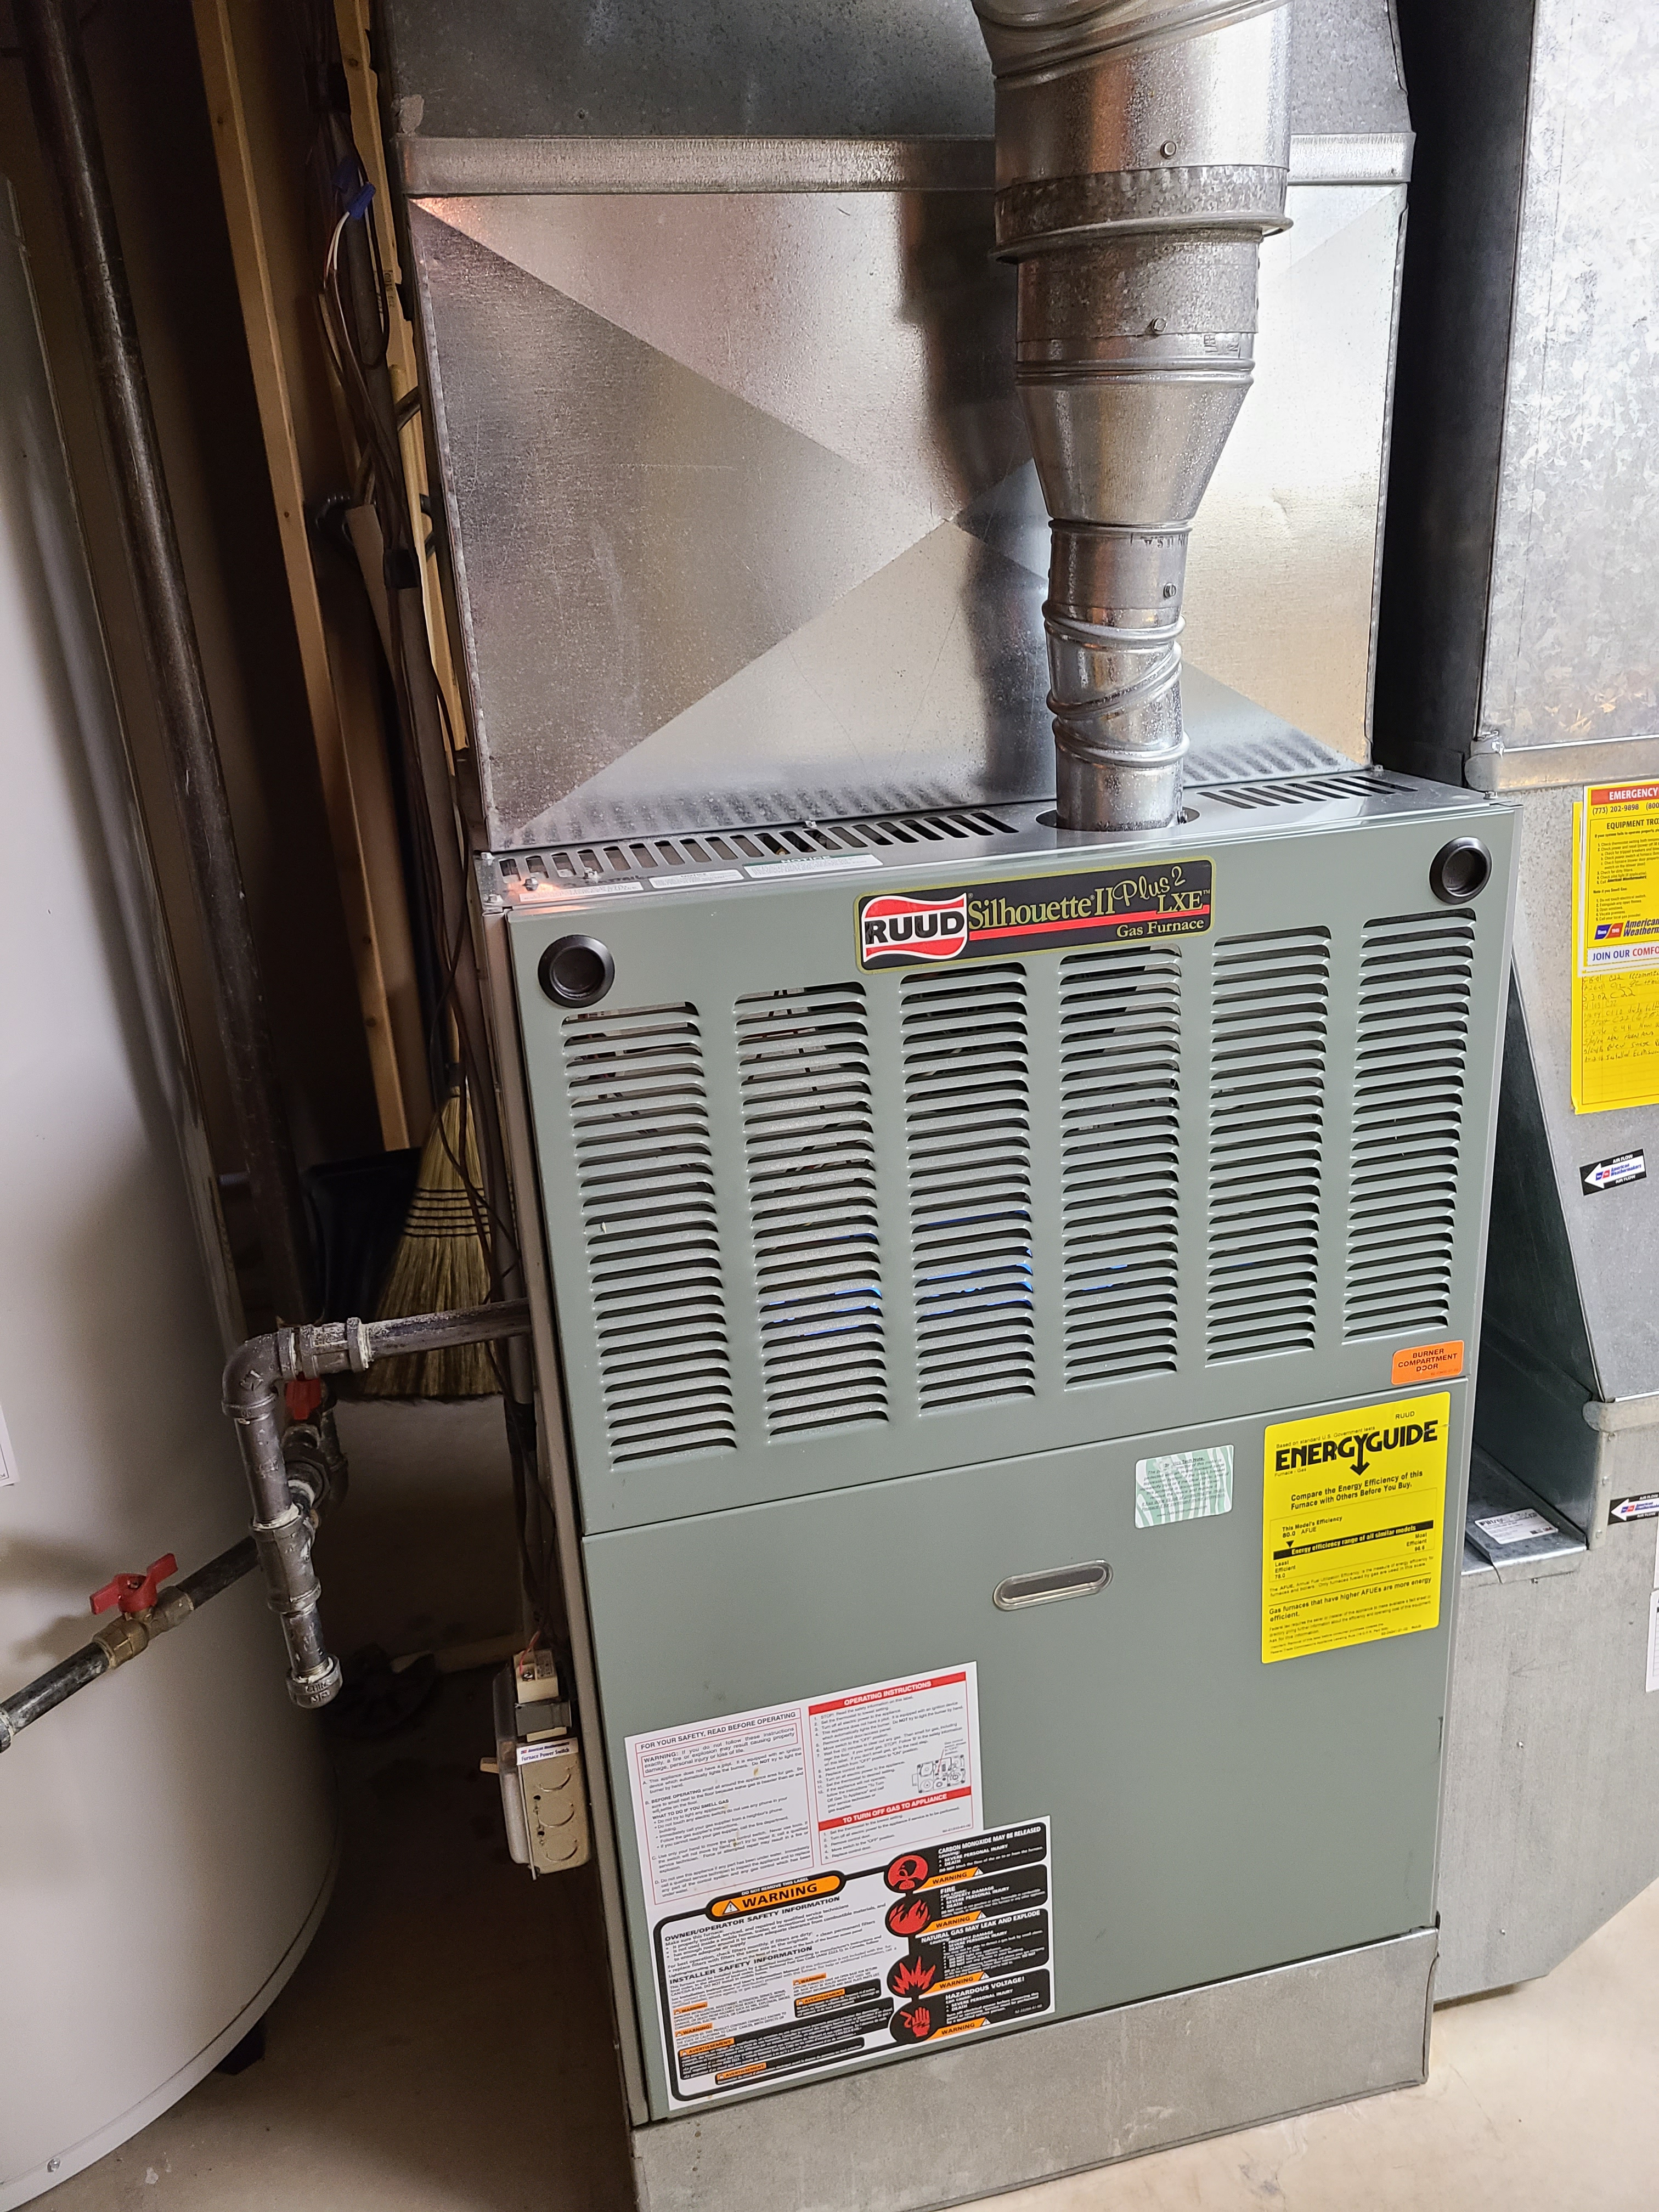 Performed annual maintenance on the Ruud heating system and Aprilaire humidifier. Made adjustments and repairs to improve the efficiency and life expectancy of the equipment.